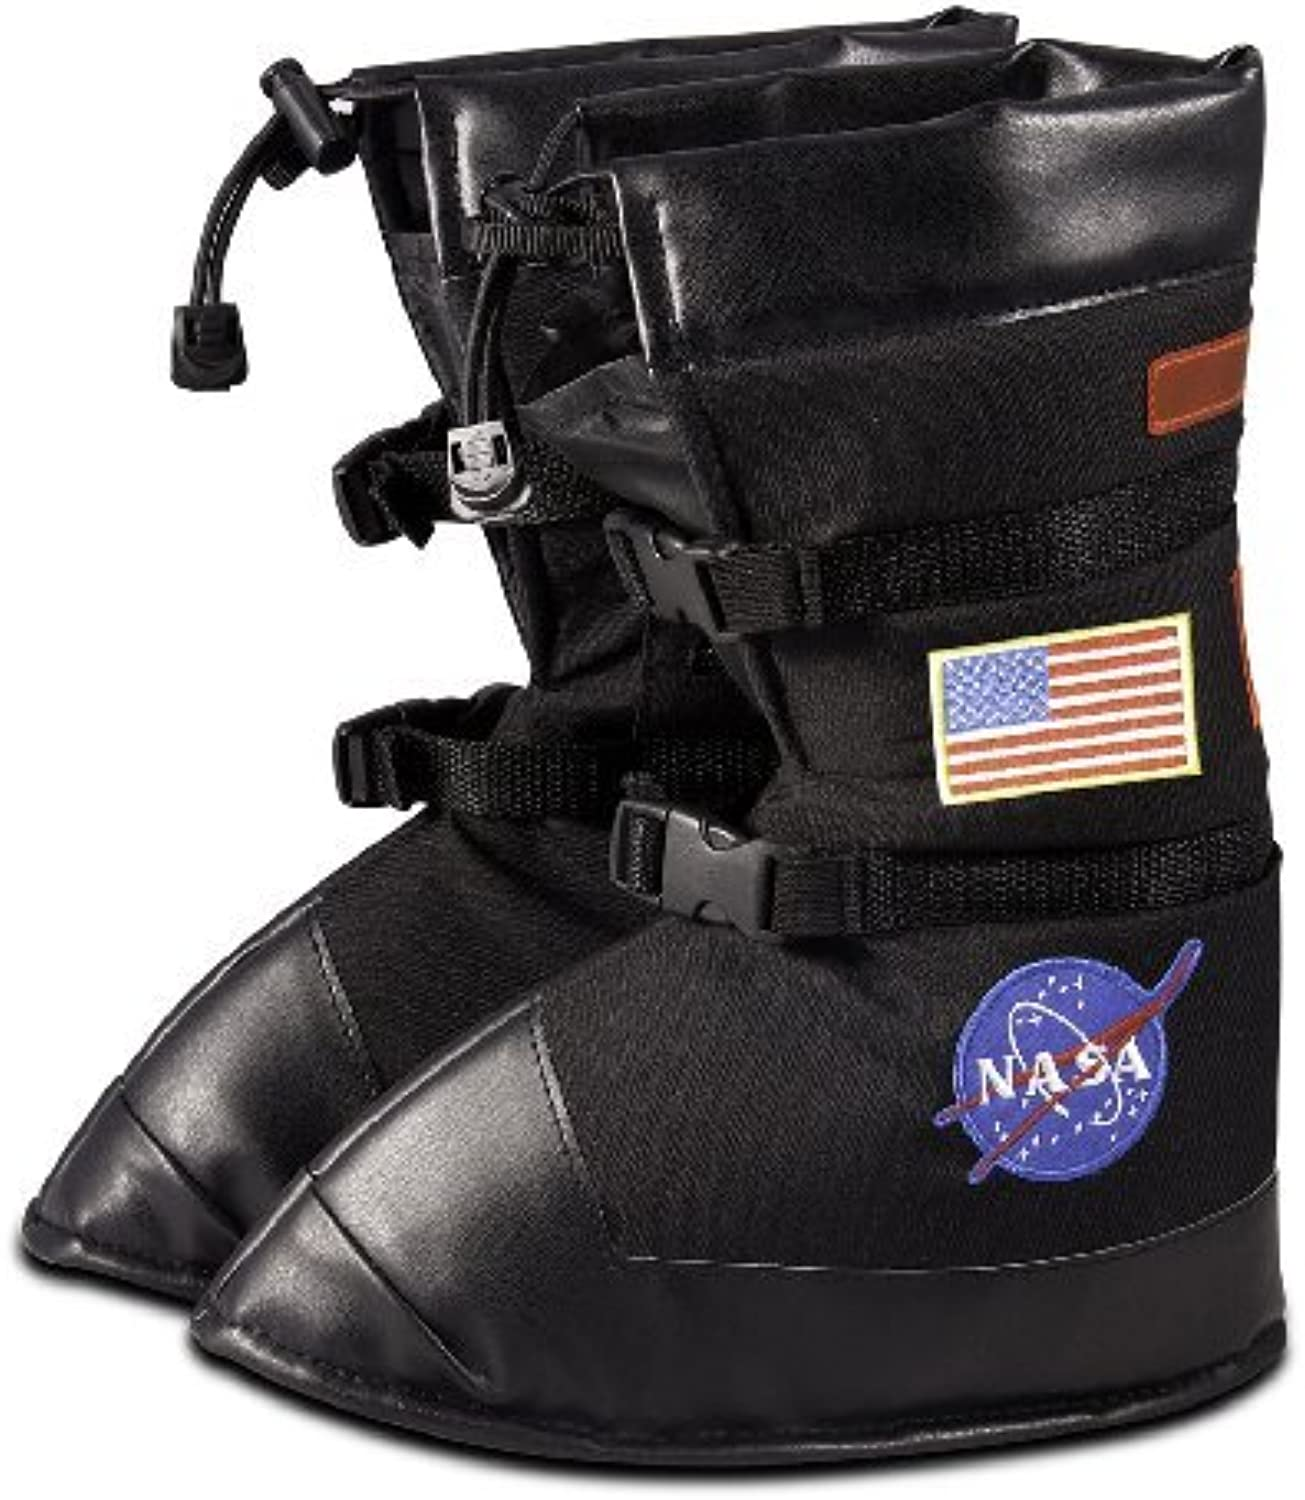 Aeromax Astronaut Boots, size Small, Black, with NASA patches by Aeromax